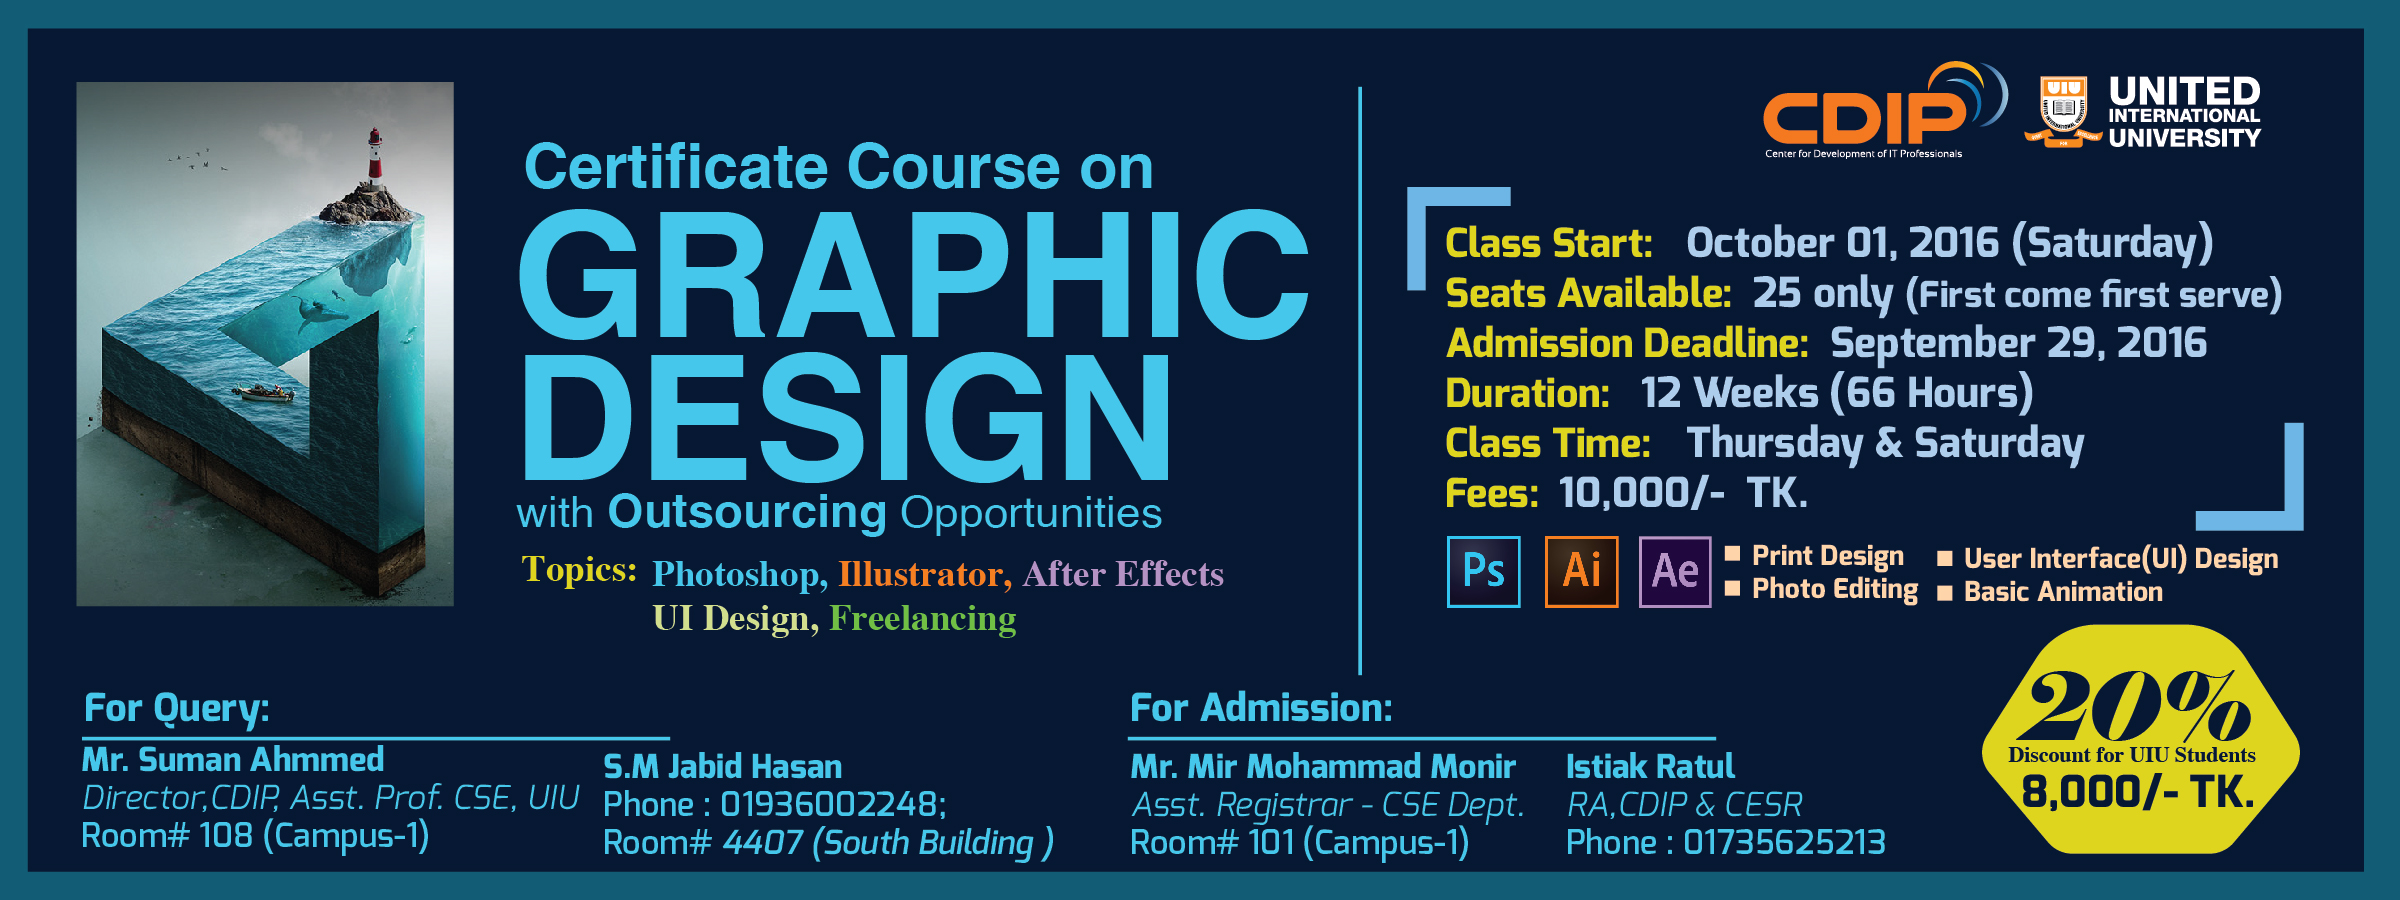 Certificate Course On Graphic Design With Outsourcing Opportunities